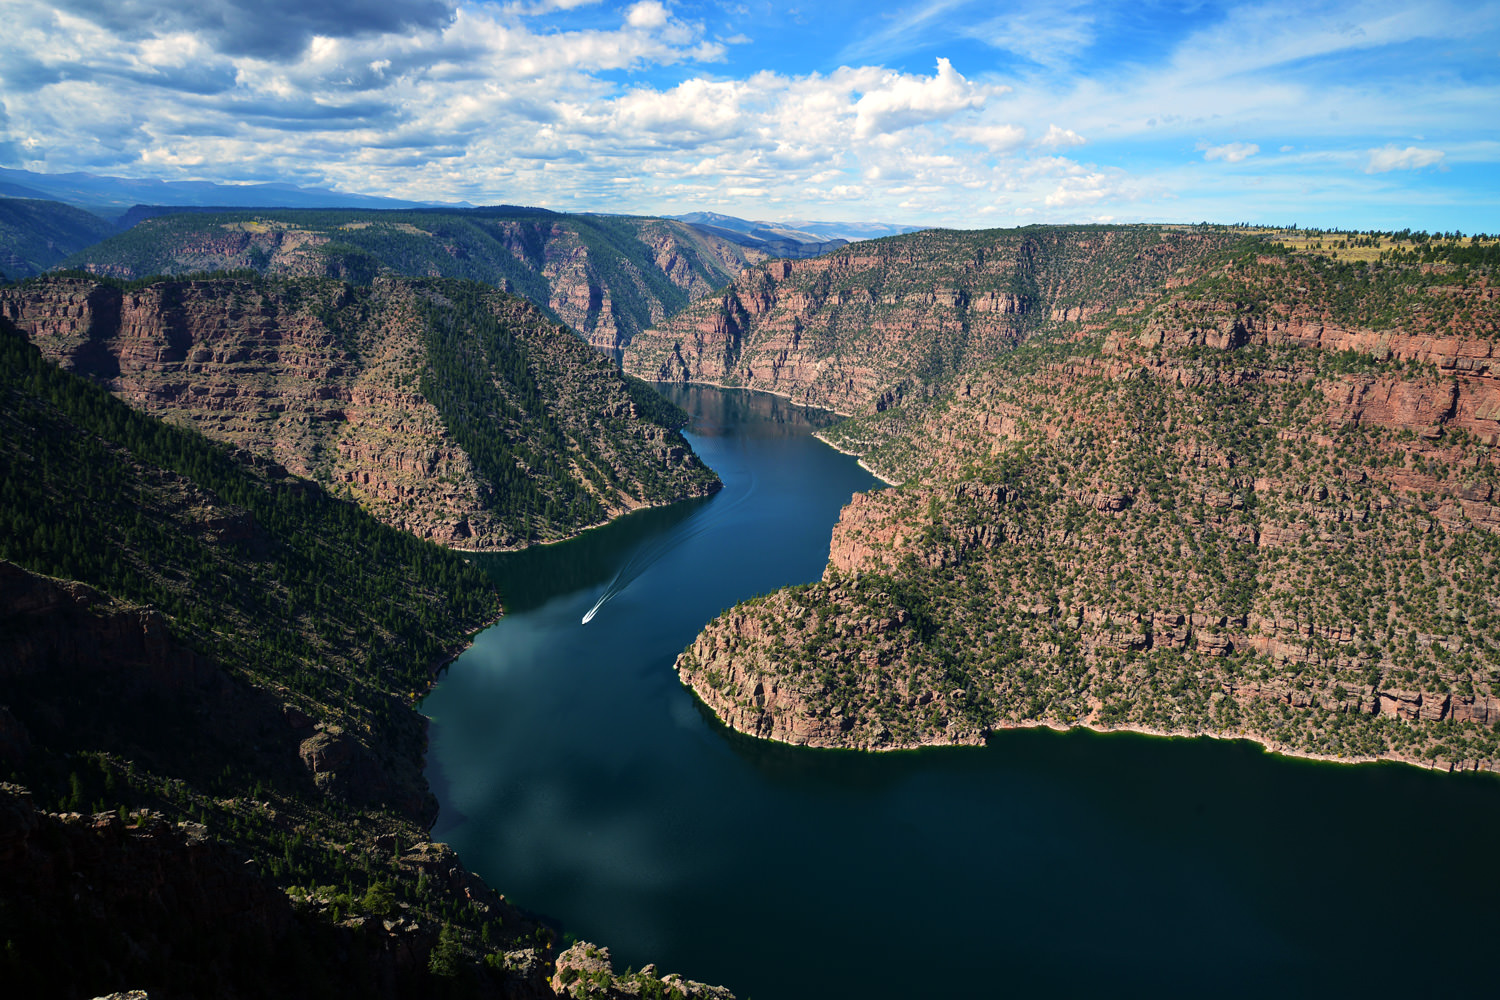 Flaming Gorge. Foto: www.usbr.gov